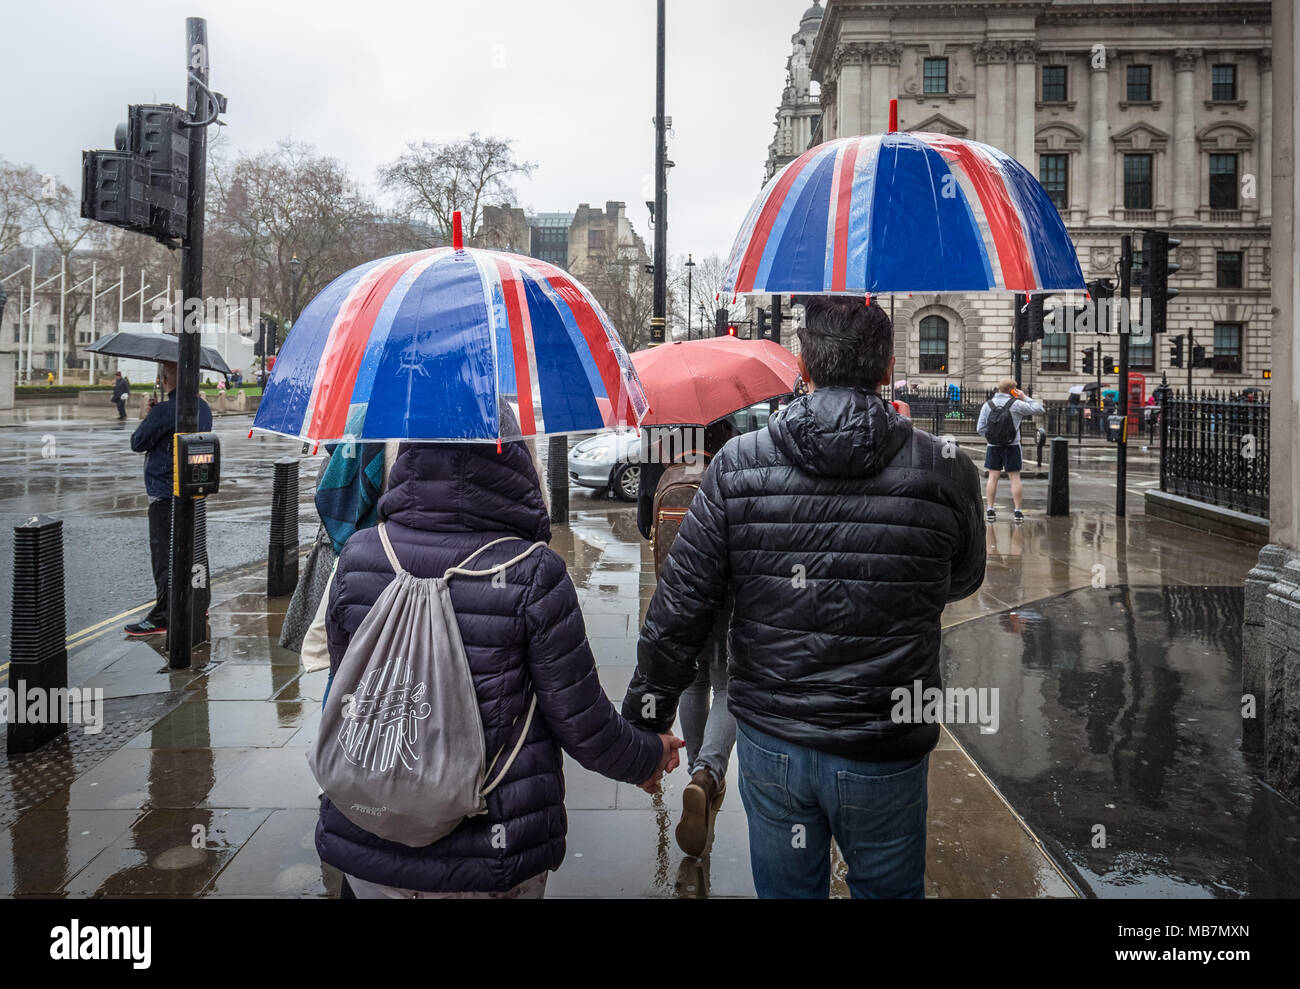 London, UK. 8th April, 2018. UK Weather: Union flag umbrellas on a wet and rainy Sunday afternoon in Westminster. Credit: Guy Corbishley/Alamy Live News Stock Photo